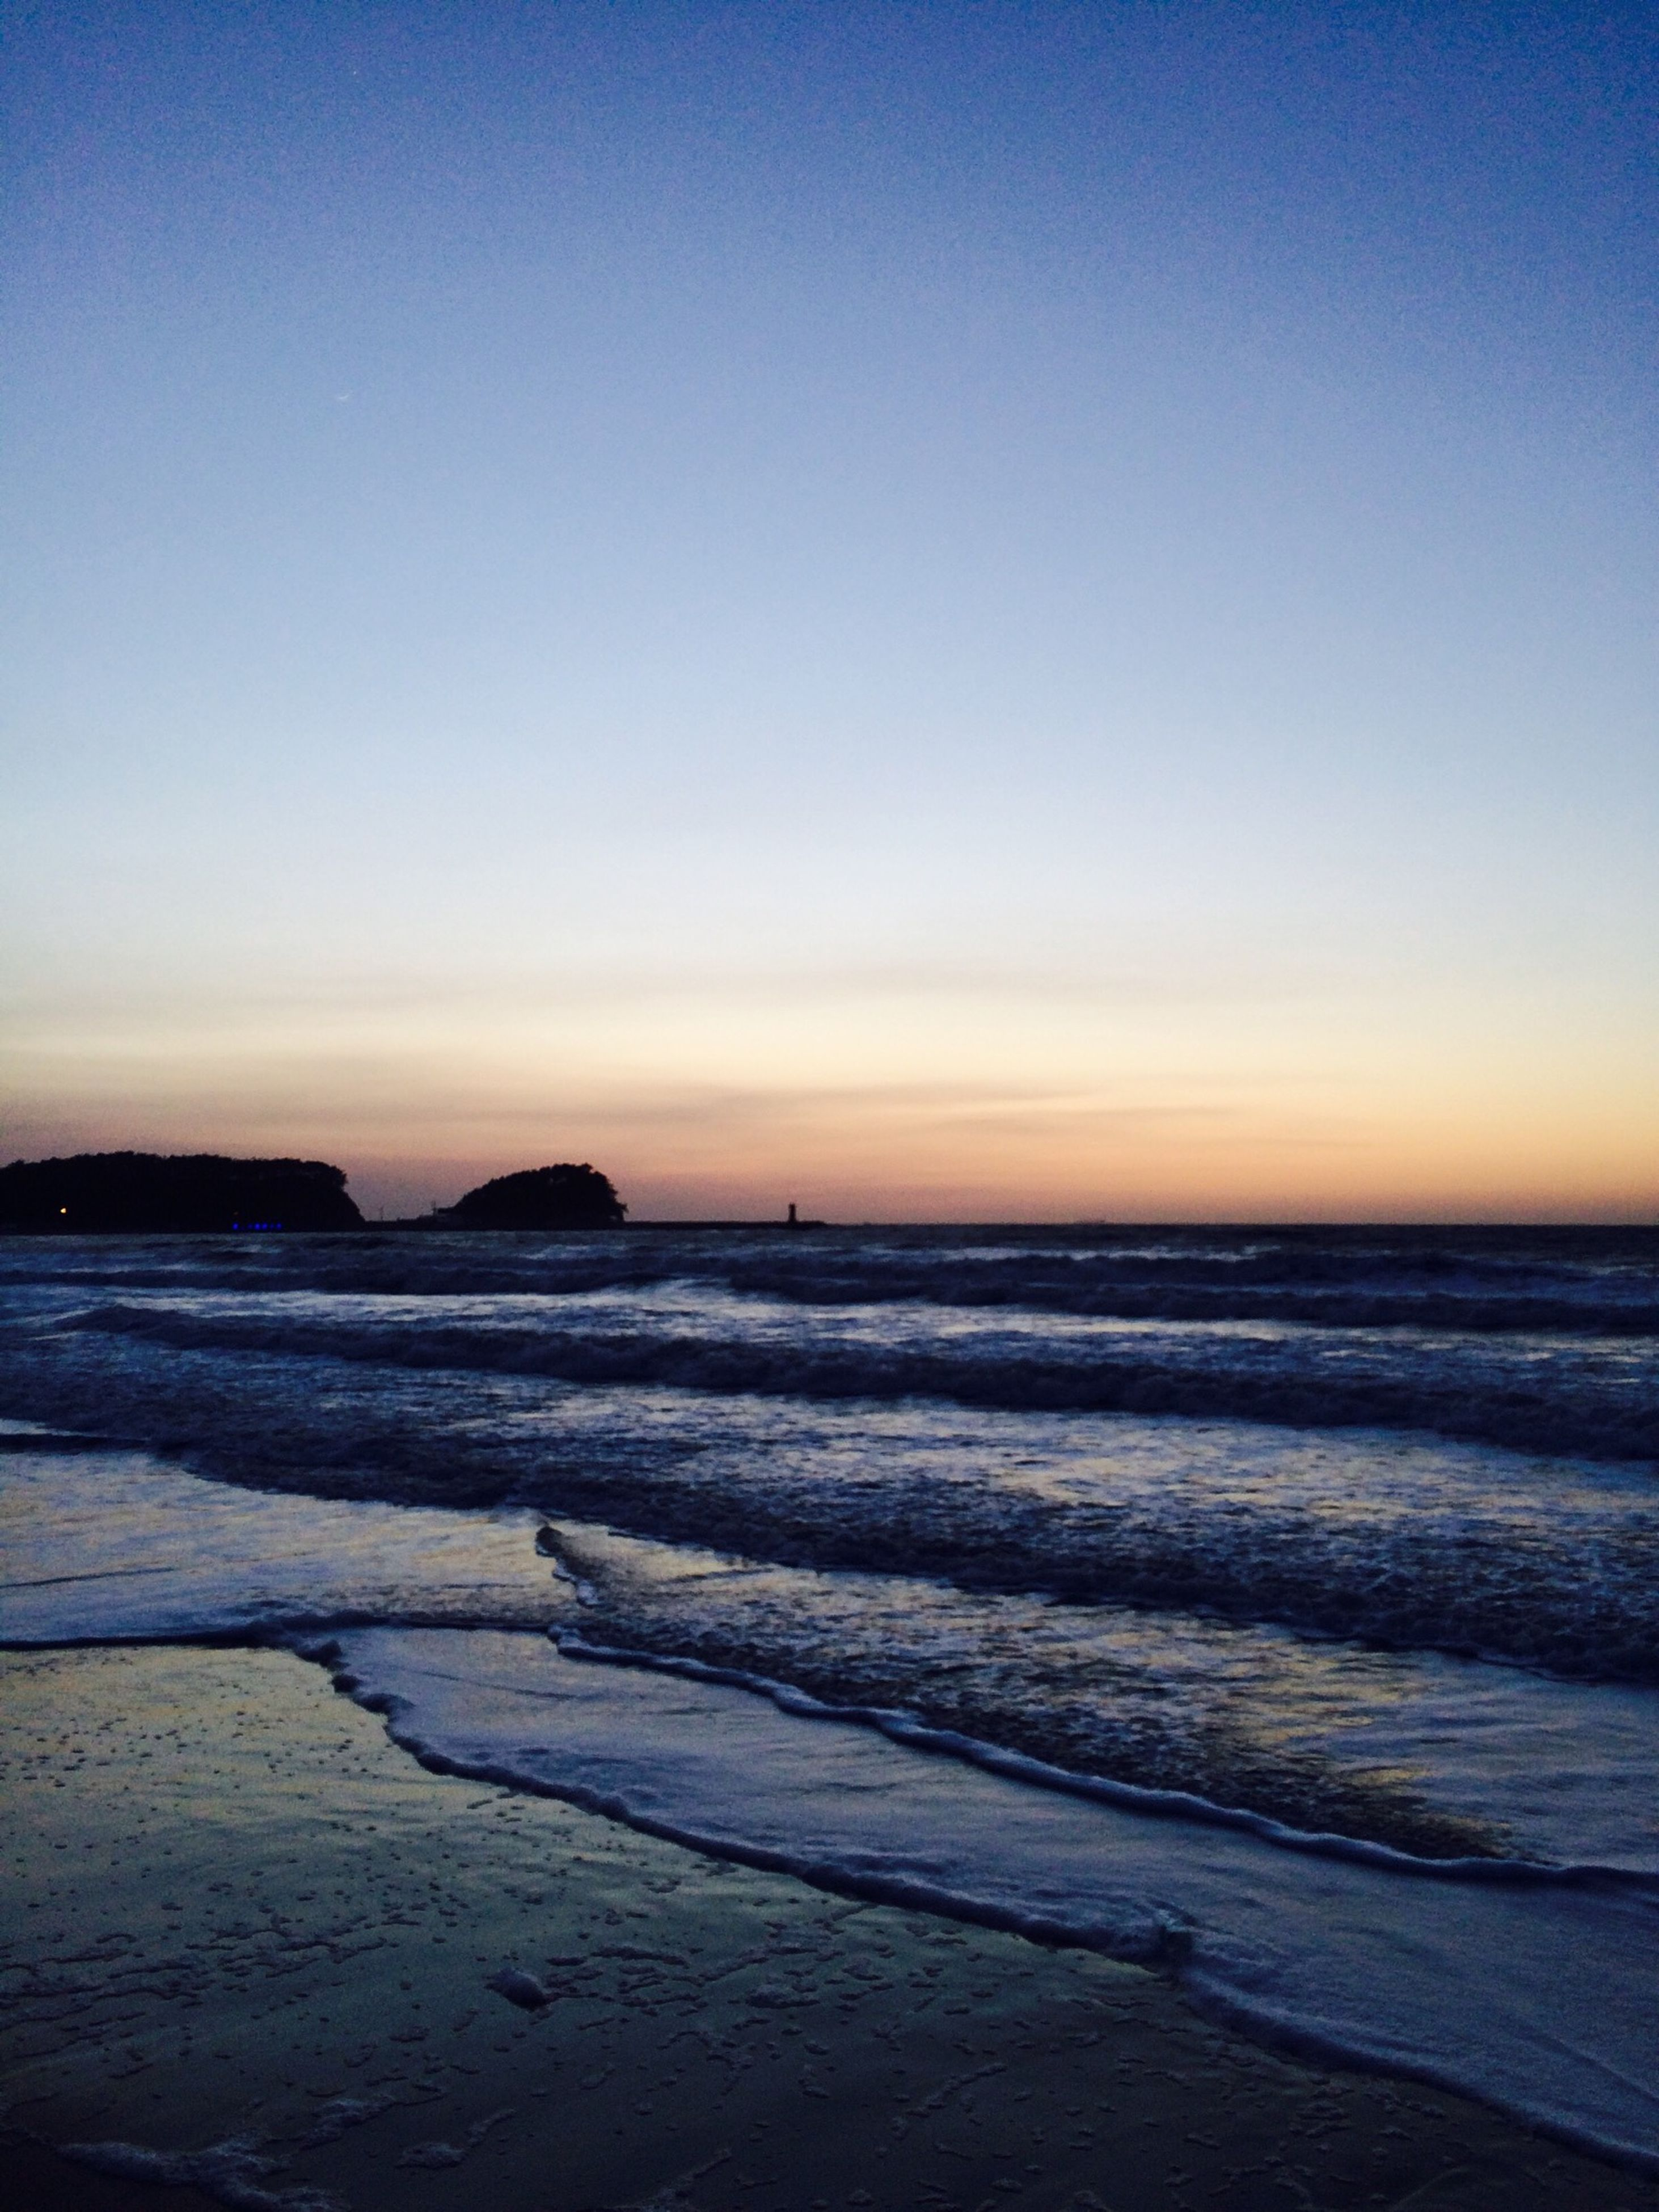 sea, water, horizon over water, tranquil scene, sunset, beach, scenics, tranquility, beauty in nature, copy space, clear sky, shore, nature, idyllic, wave, orange color, sky, sand, dusk, remote